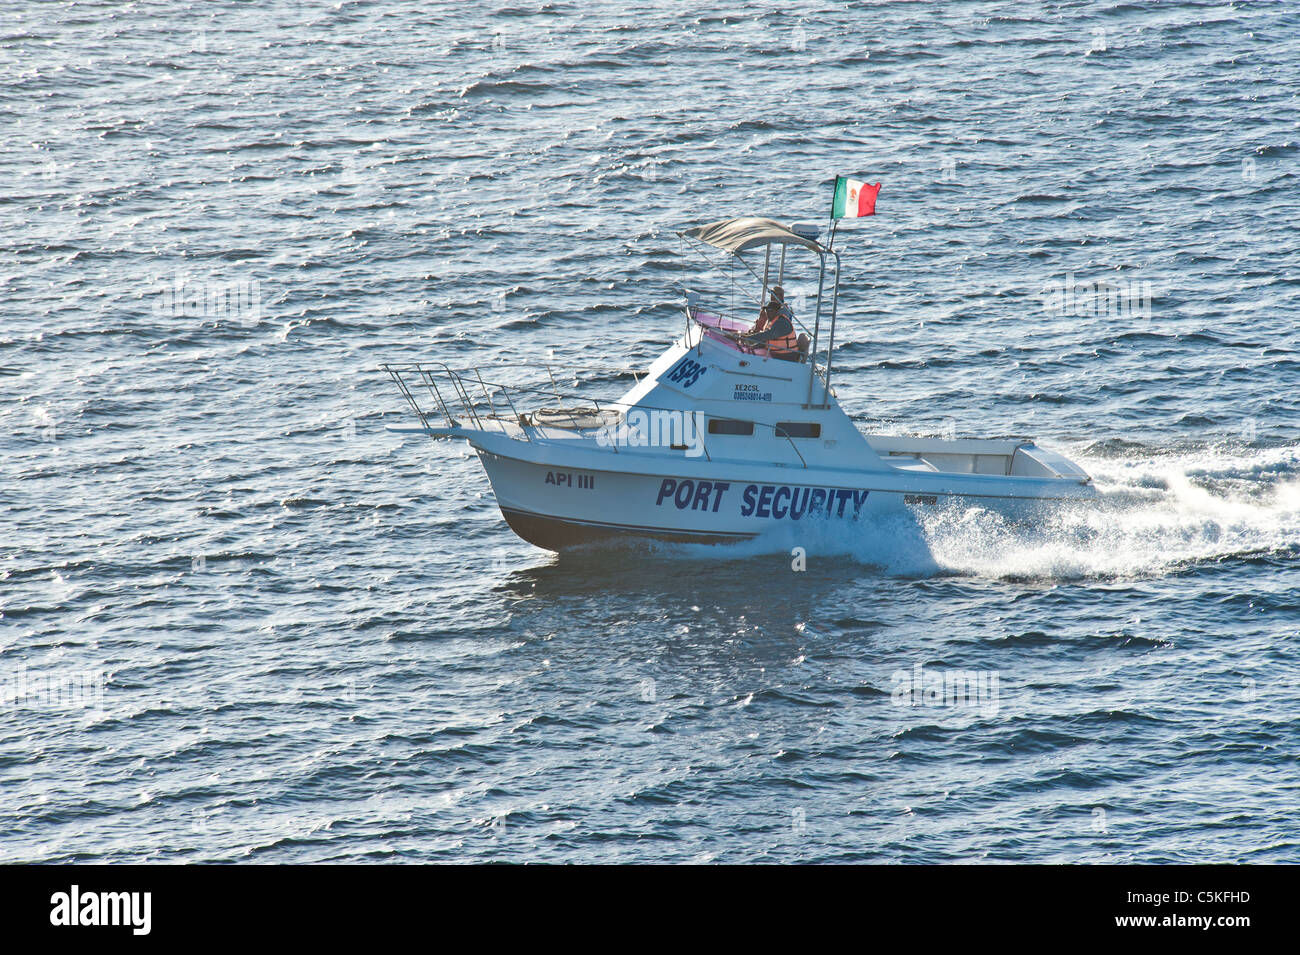 Port Security Boat Near Our Cruise Ship Mexico Stock Photo - Is there security on cruise ships